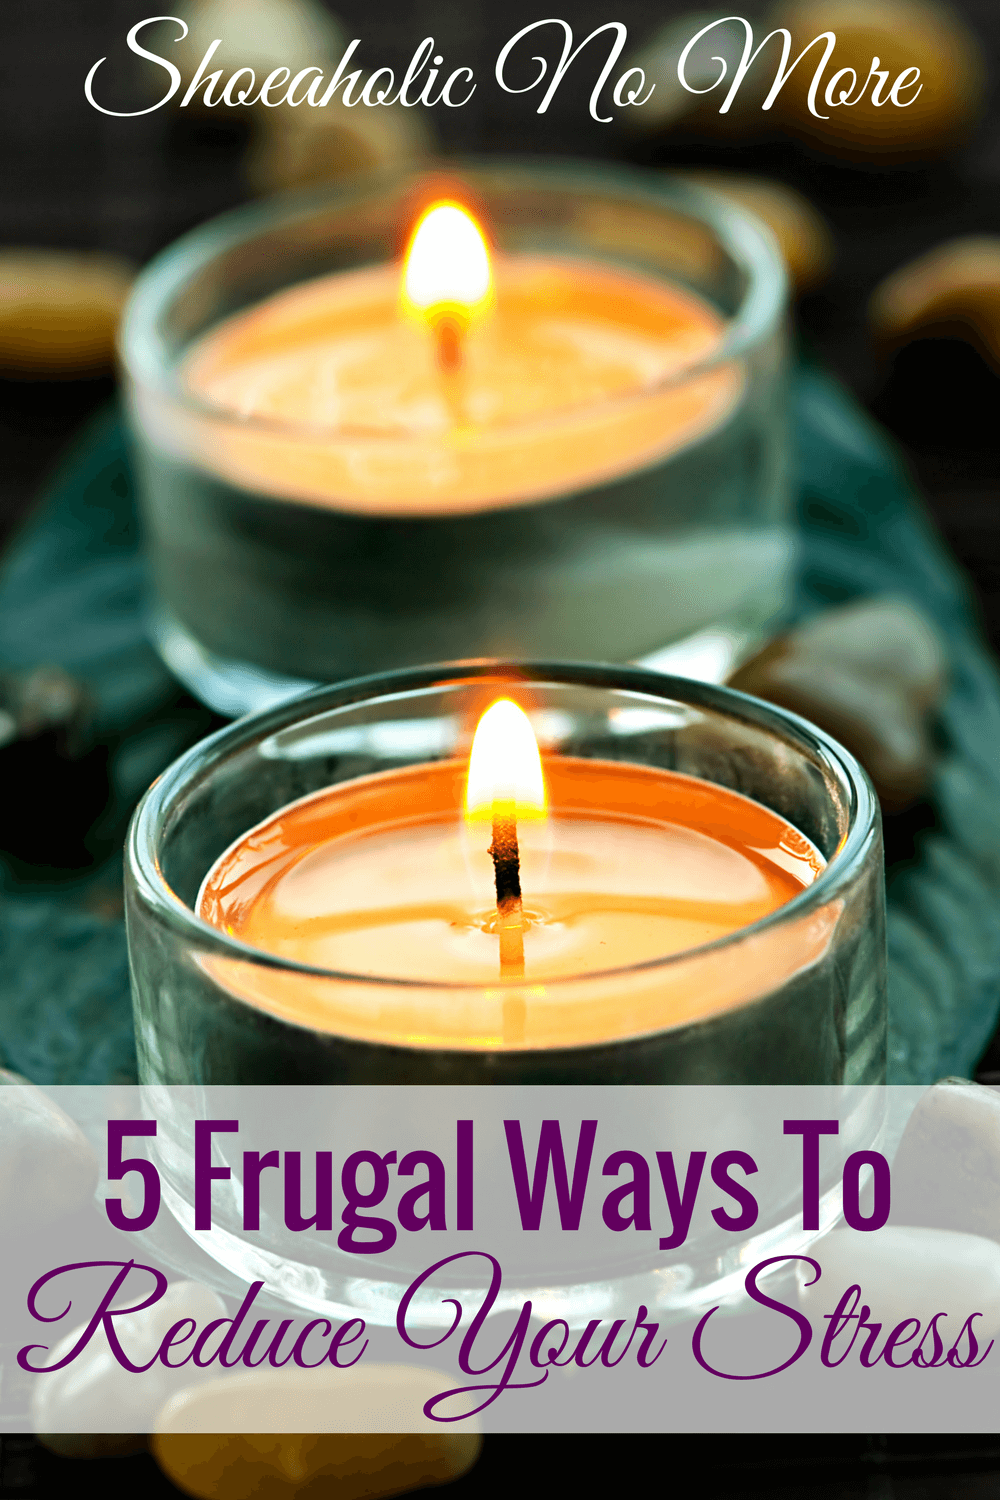 Stressed out and need to relax? This blogger shares 5 easy and frugal ways you can reduce your stress and get a little relaxation in!